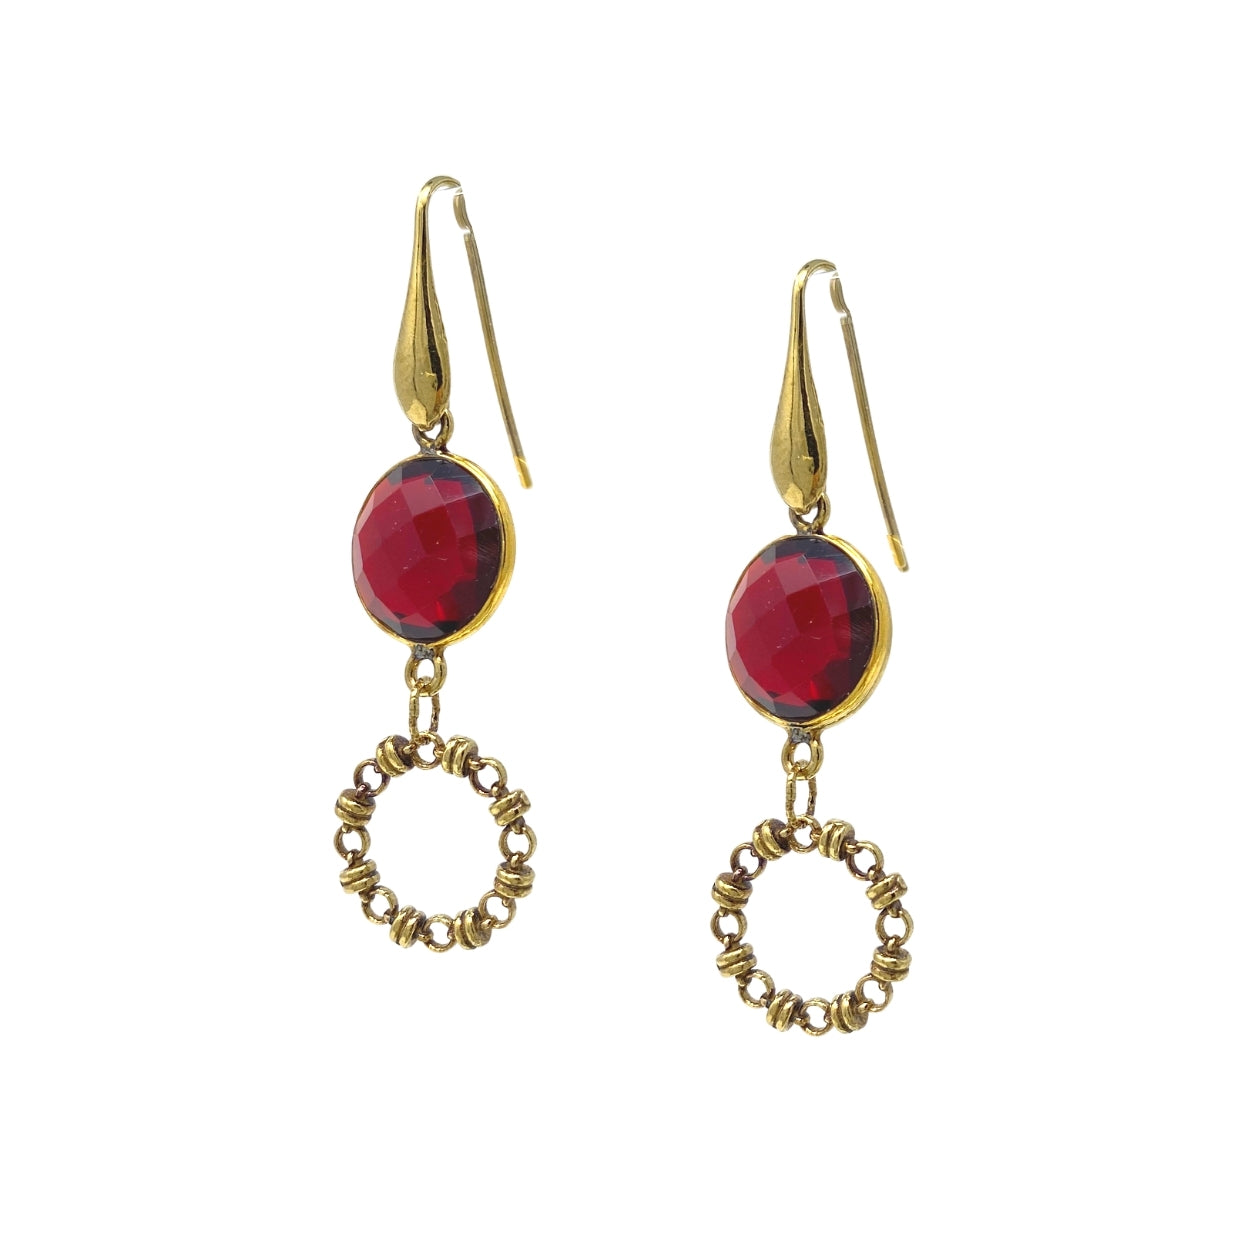 Earrings Botticelli x1 Garnet x1 Antique Gold